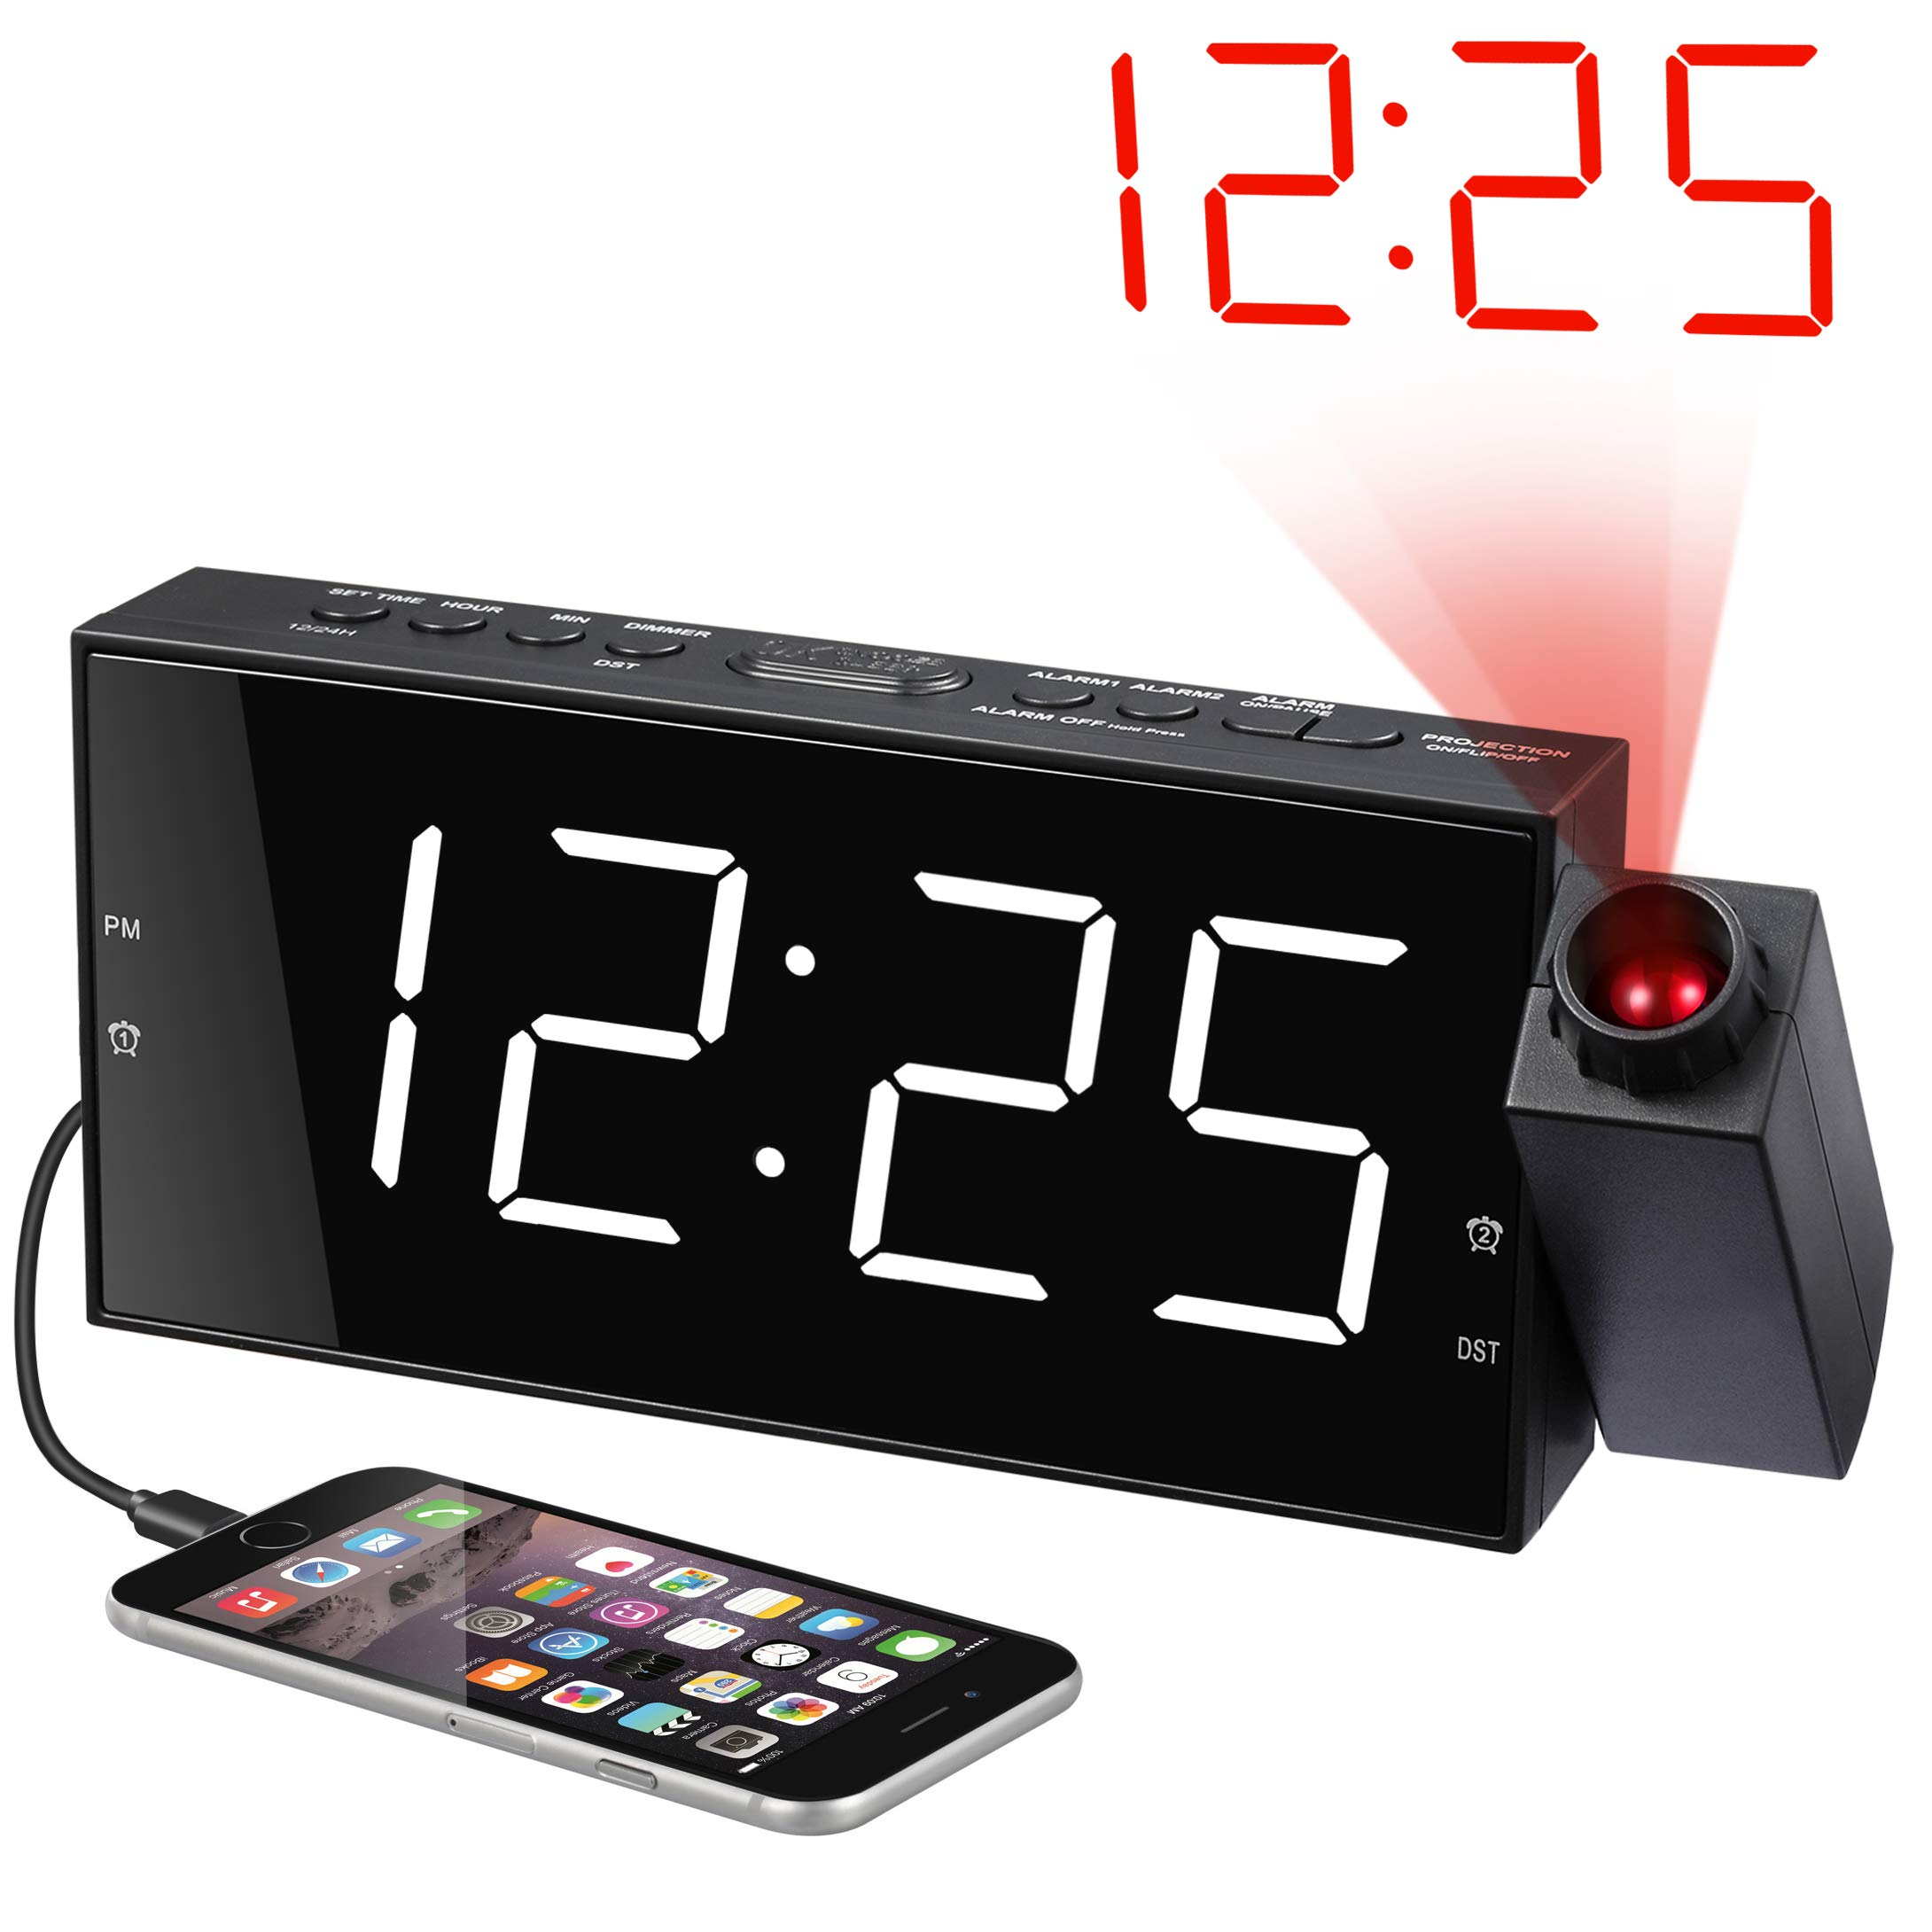 """Projection Alarm Clock for Bedrooms, Digital Alarm Clock with Large 7"""" LED Display & Dimmer, 180° Projector, USB Charger, 12/24 H, DST, Snooze, Battery Backup, Desk Wall Ceiling Clock for Kid Elderly"""